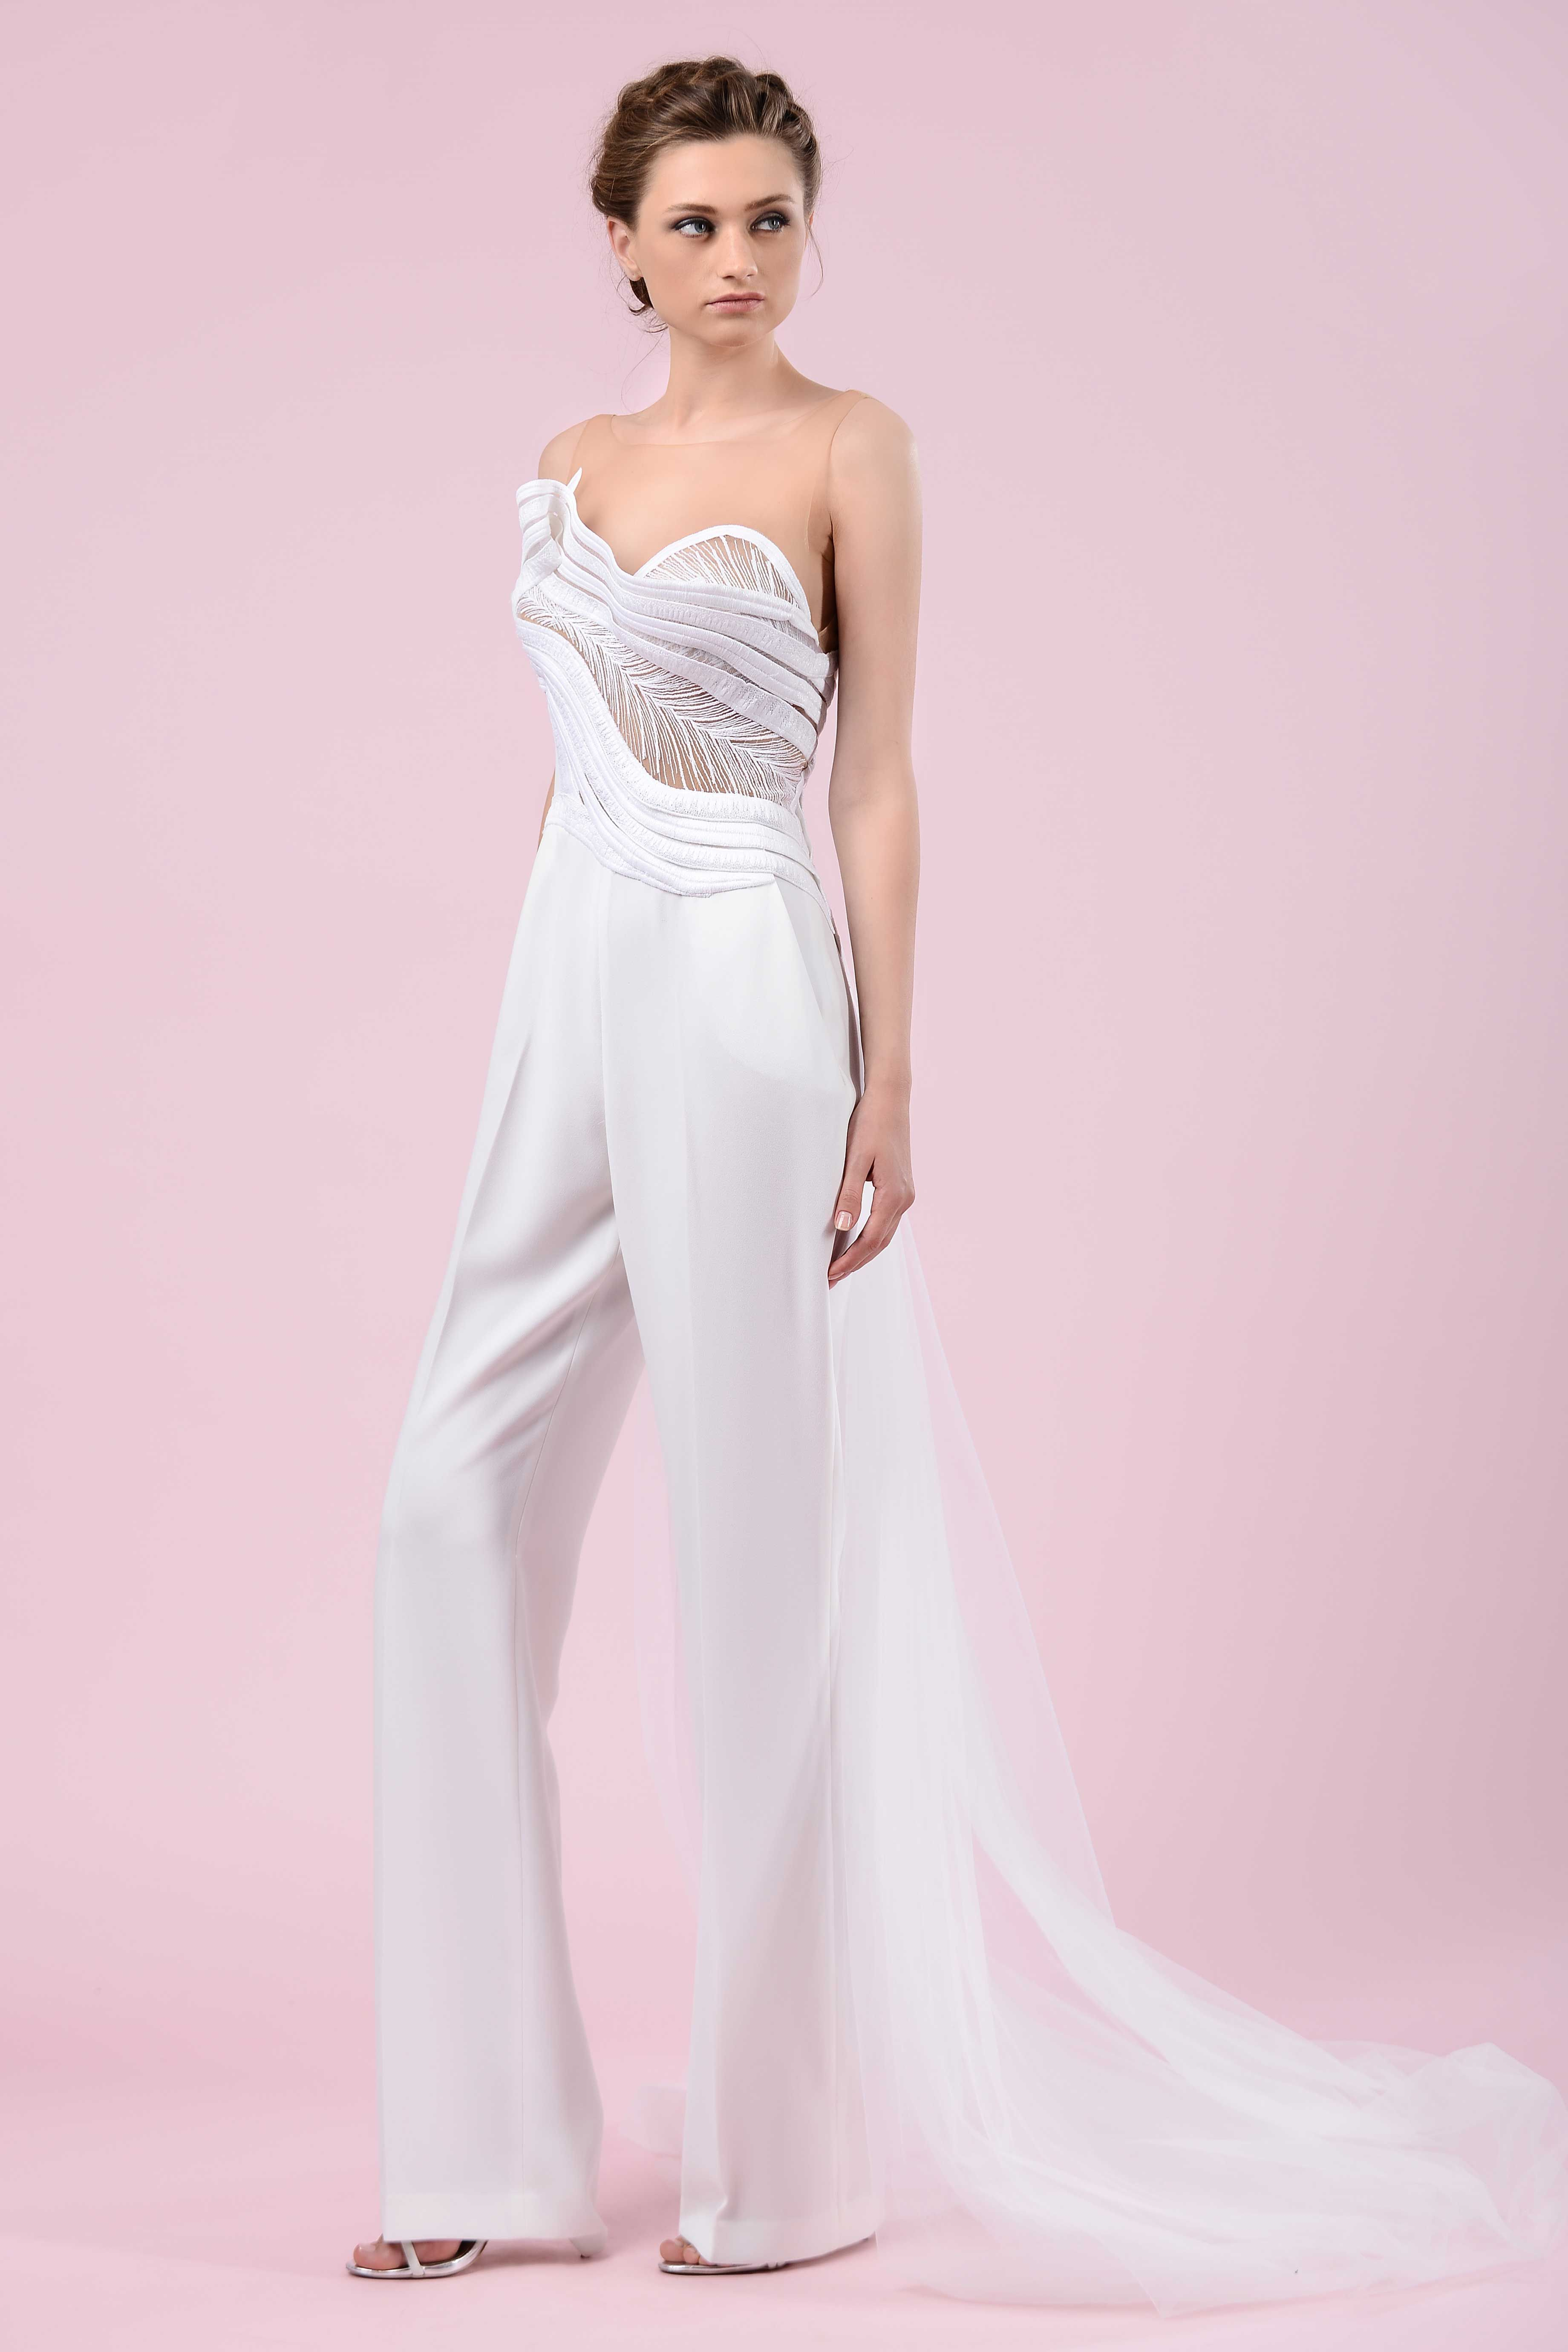 2496bc16c62 Architectural Jumpsuit by Gemy Maalouf